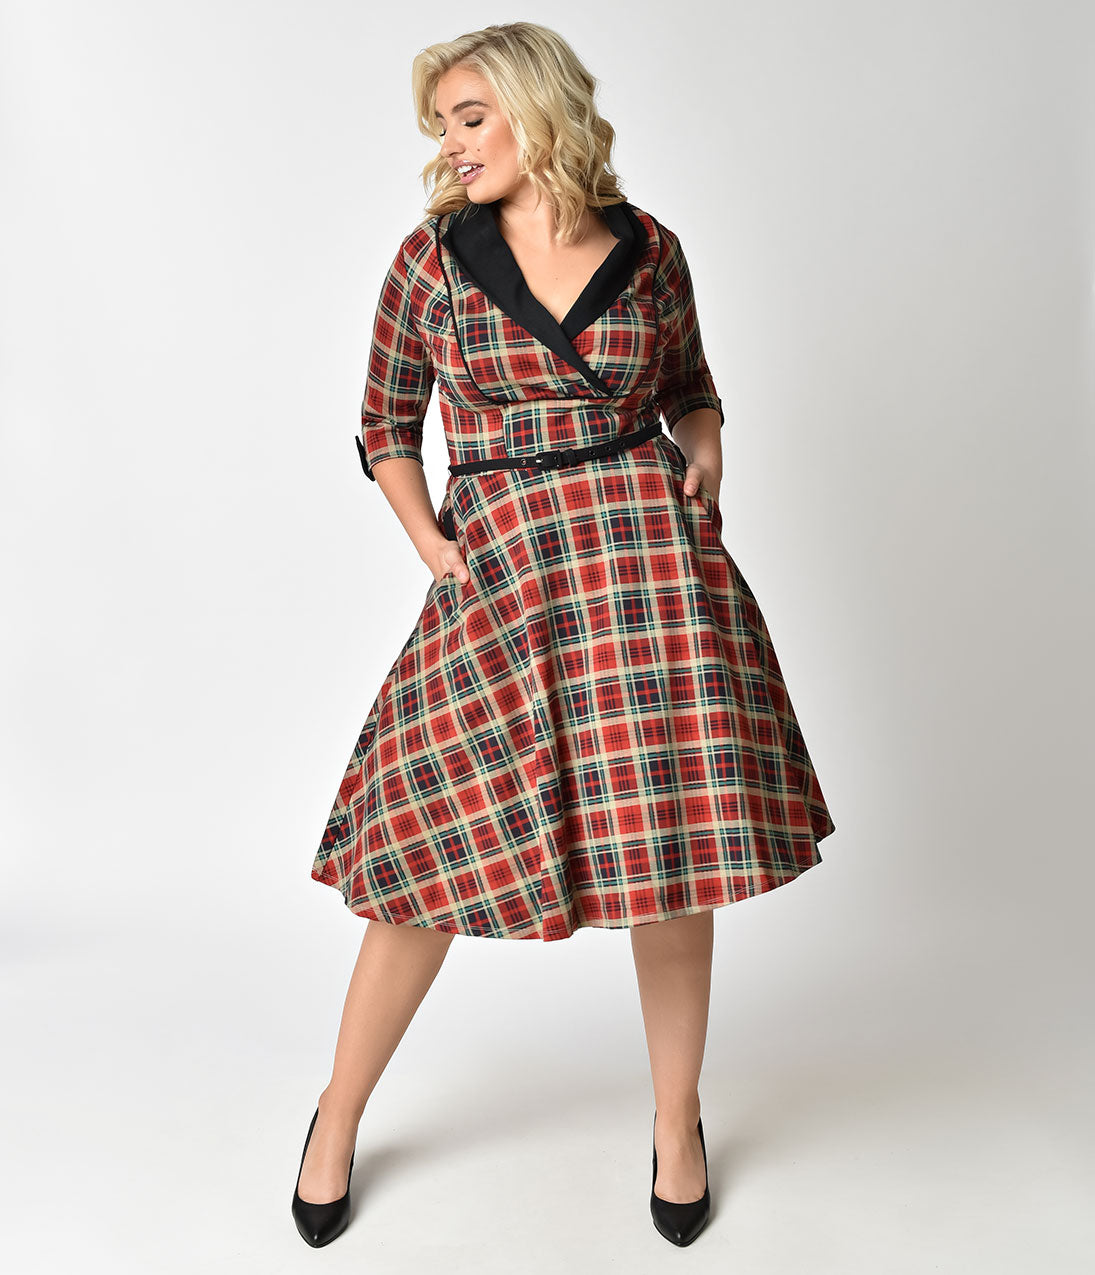 1950s Plus Size Dresses, Clothing and Costumes Unique Vintage Plus Size 1950S Style Red Plaid Three-Quarter Sleeve Trudy Swing Dress $98.00 AT vintagedancer.com